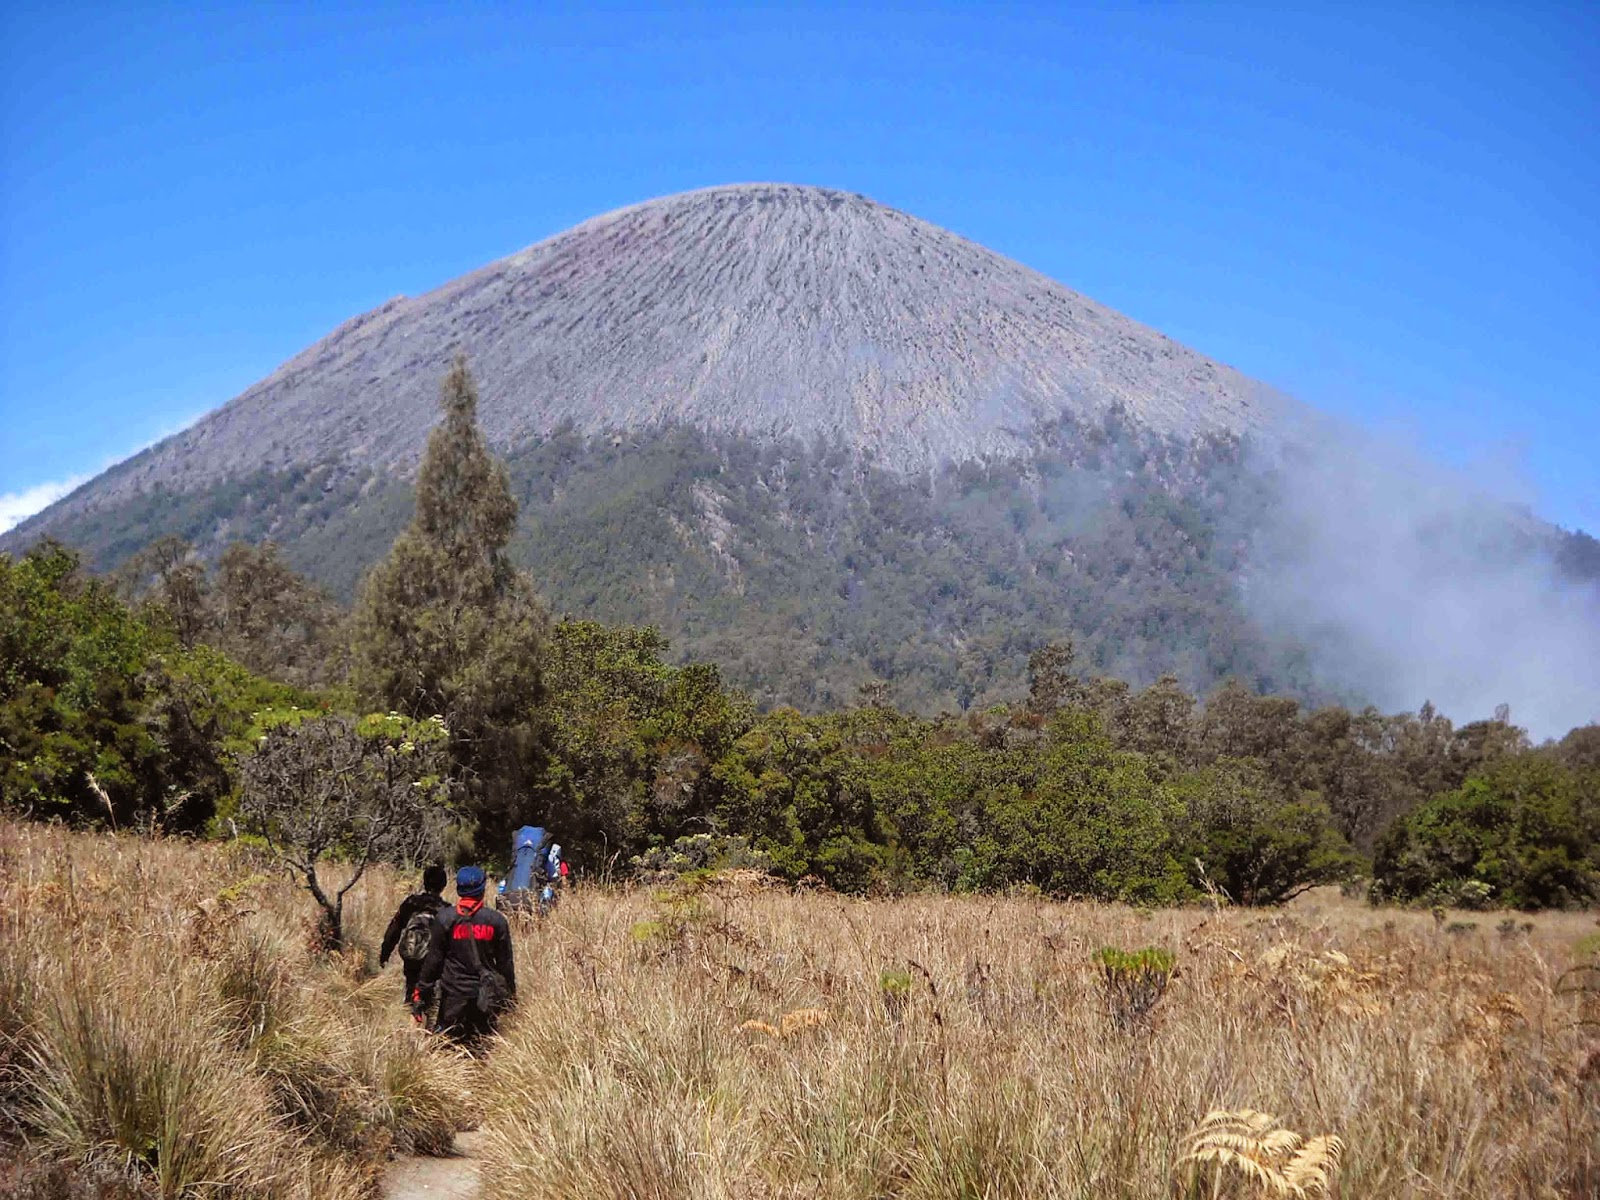 mount semeru trekking activity in bts national park